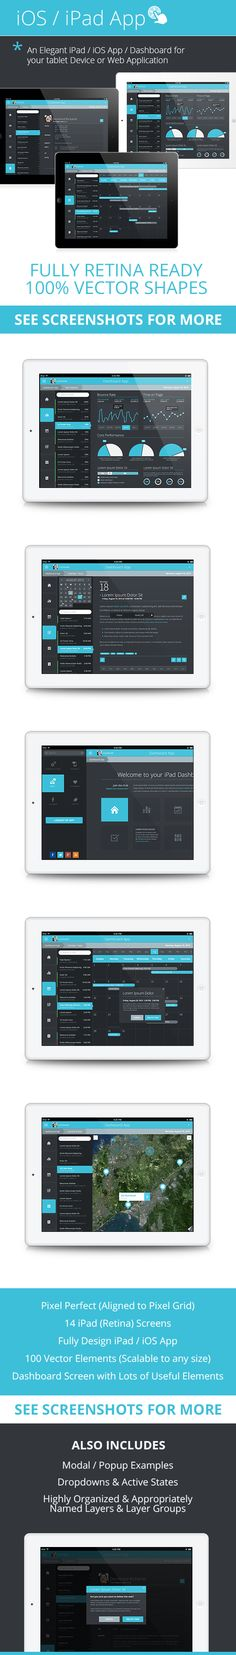 Flat iPad -iOS Tablet App & Dashboard as a fully designed ipad dashboard, task app, calendar app, contacts app, or as a design bootstrap for your next ipad project. iOS 7 – iPad Tablet App & Dashboard is a professional retina iOS iPad Tablet app template …